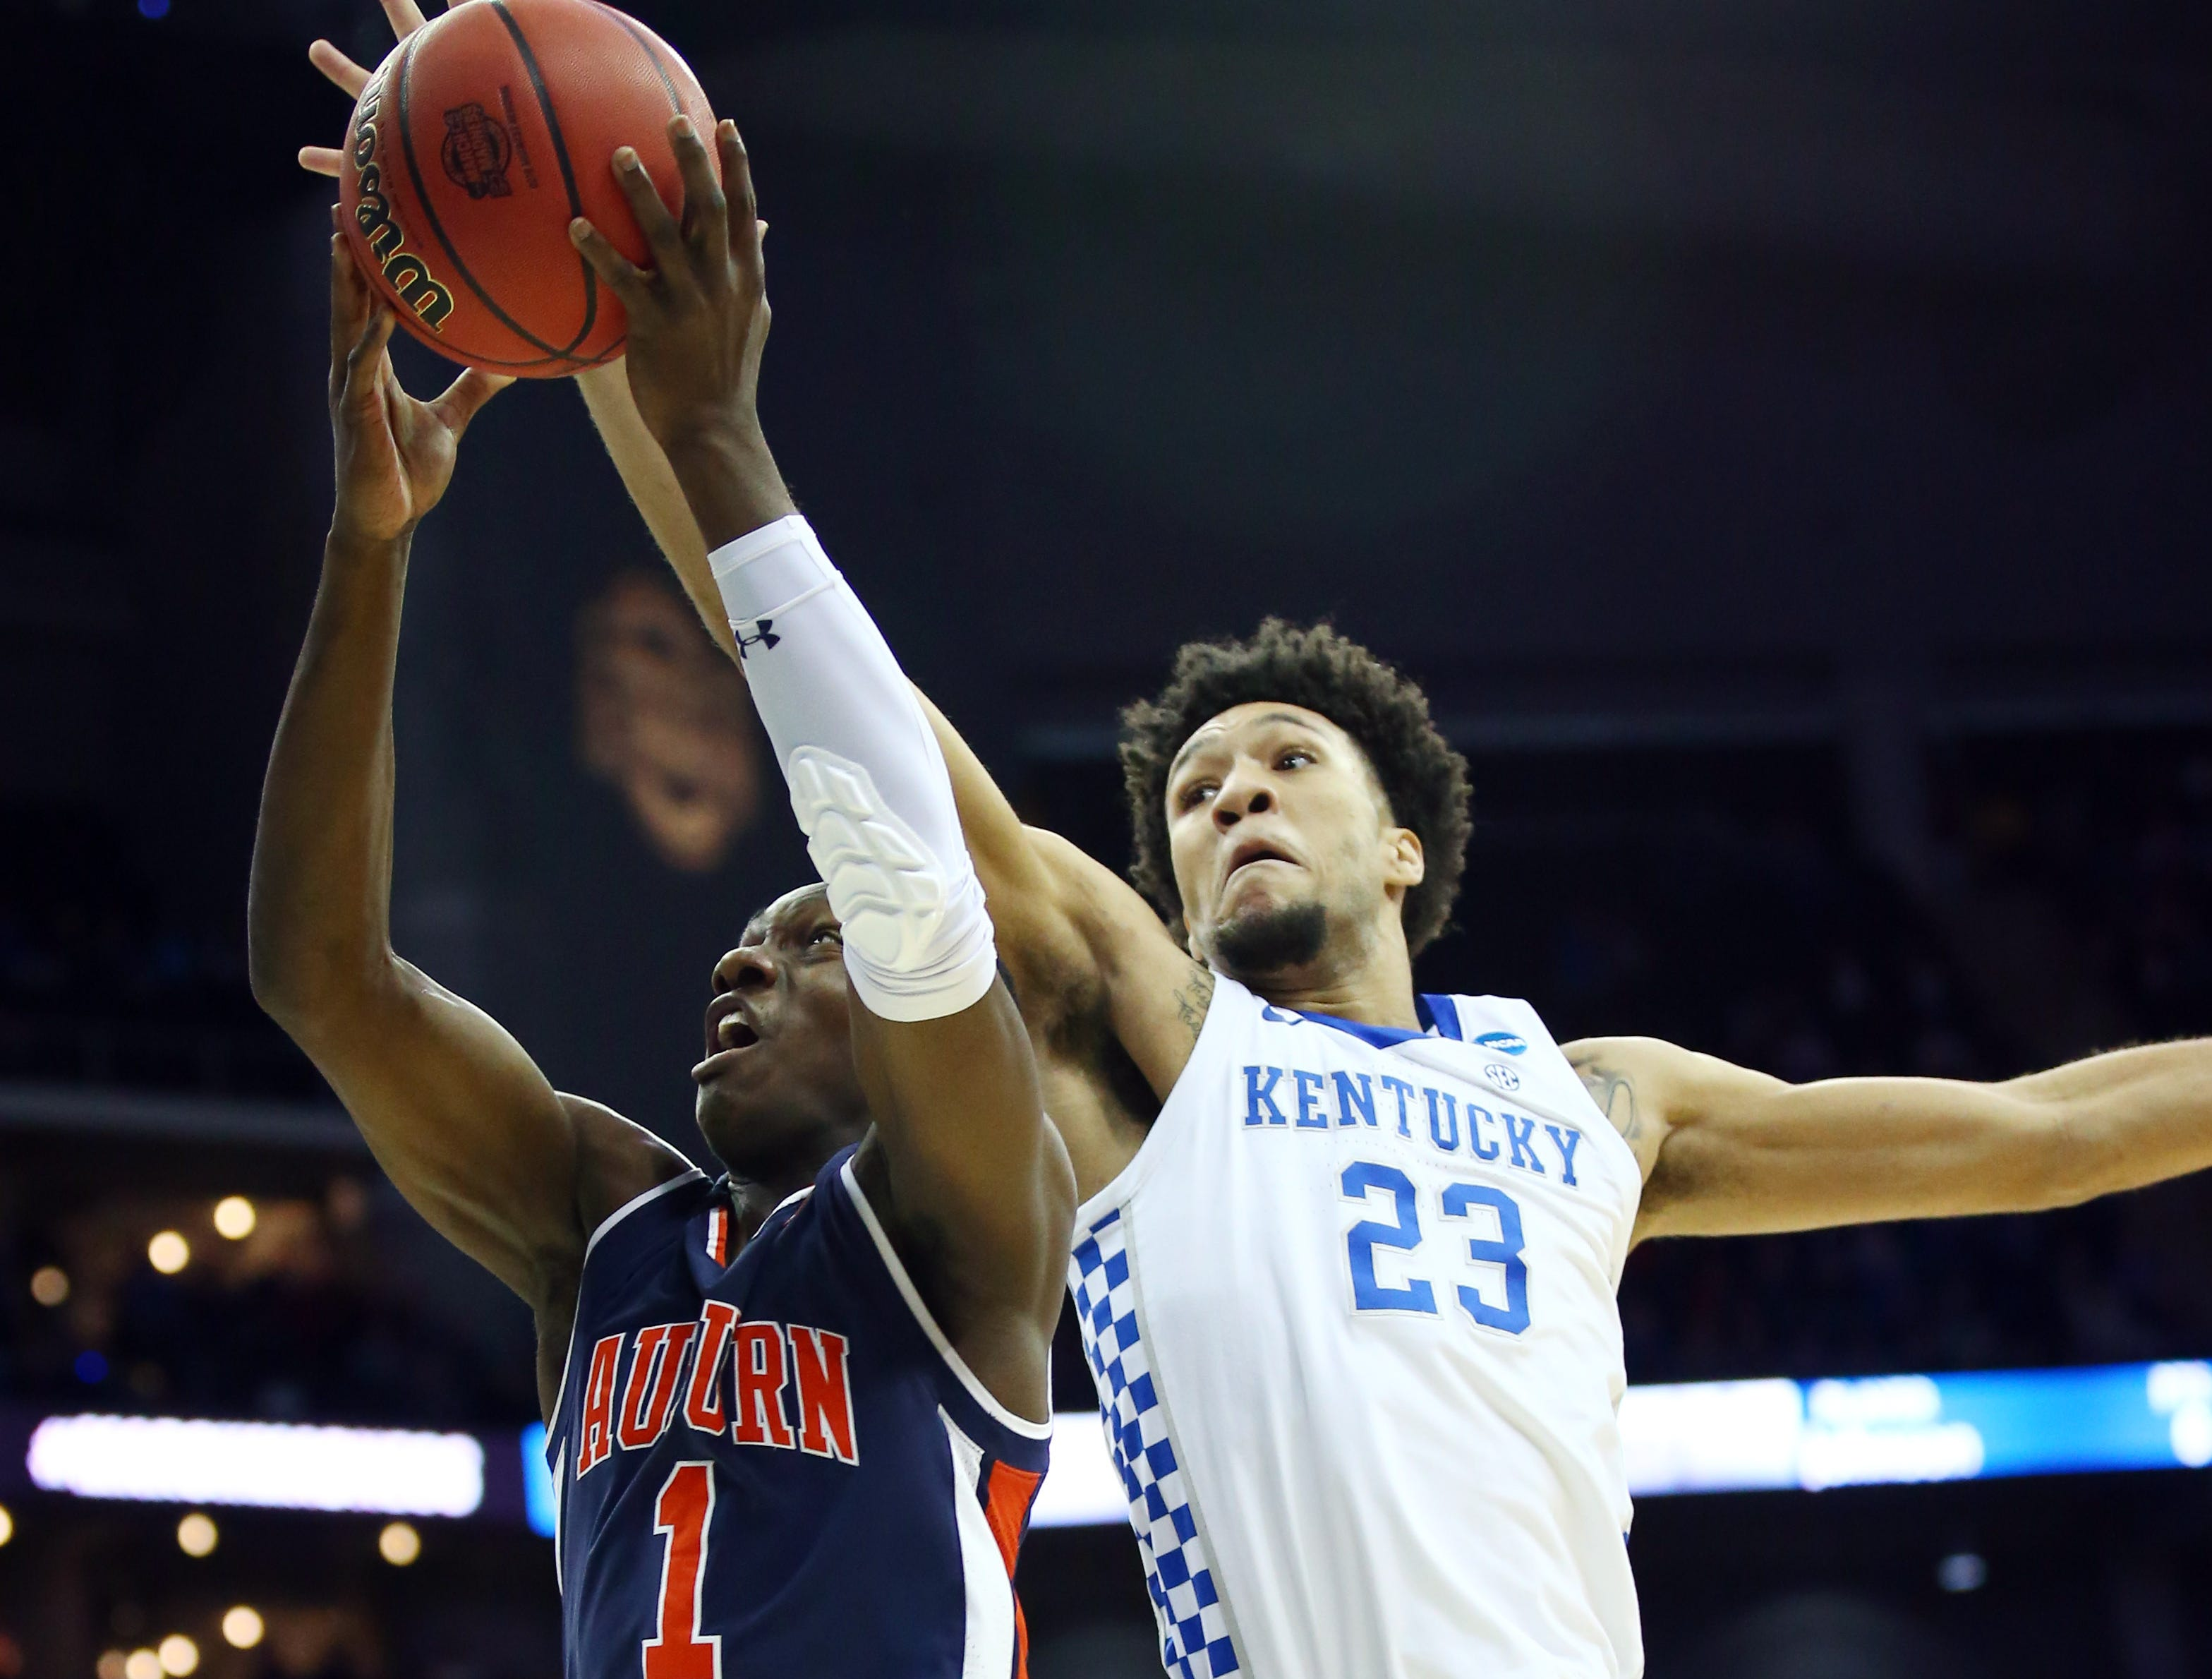 Mar 31, 2019; Kansas City, MO, United States; Auburn Tigers guard Jared Harper (1) shoots against Kentucky Wildcats forward EJ Montgomery (23) during the first half in the championship game of the midwest regional of the 2019 NCAA Tournament at Sprint Center. Mandatory Credit: Jay Biggerstaff-USA TODAY Sports